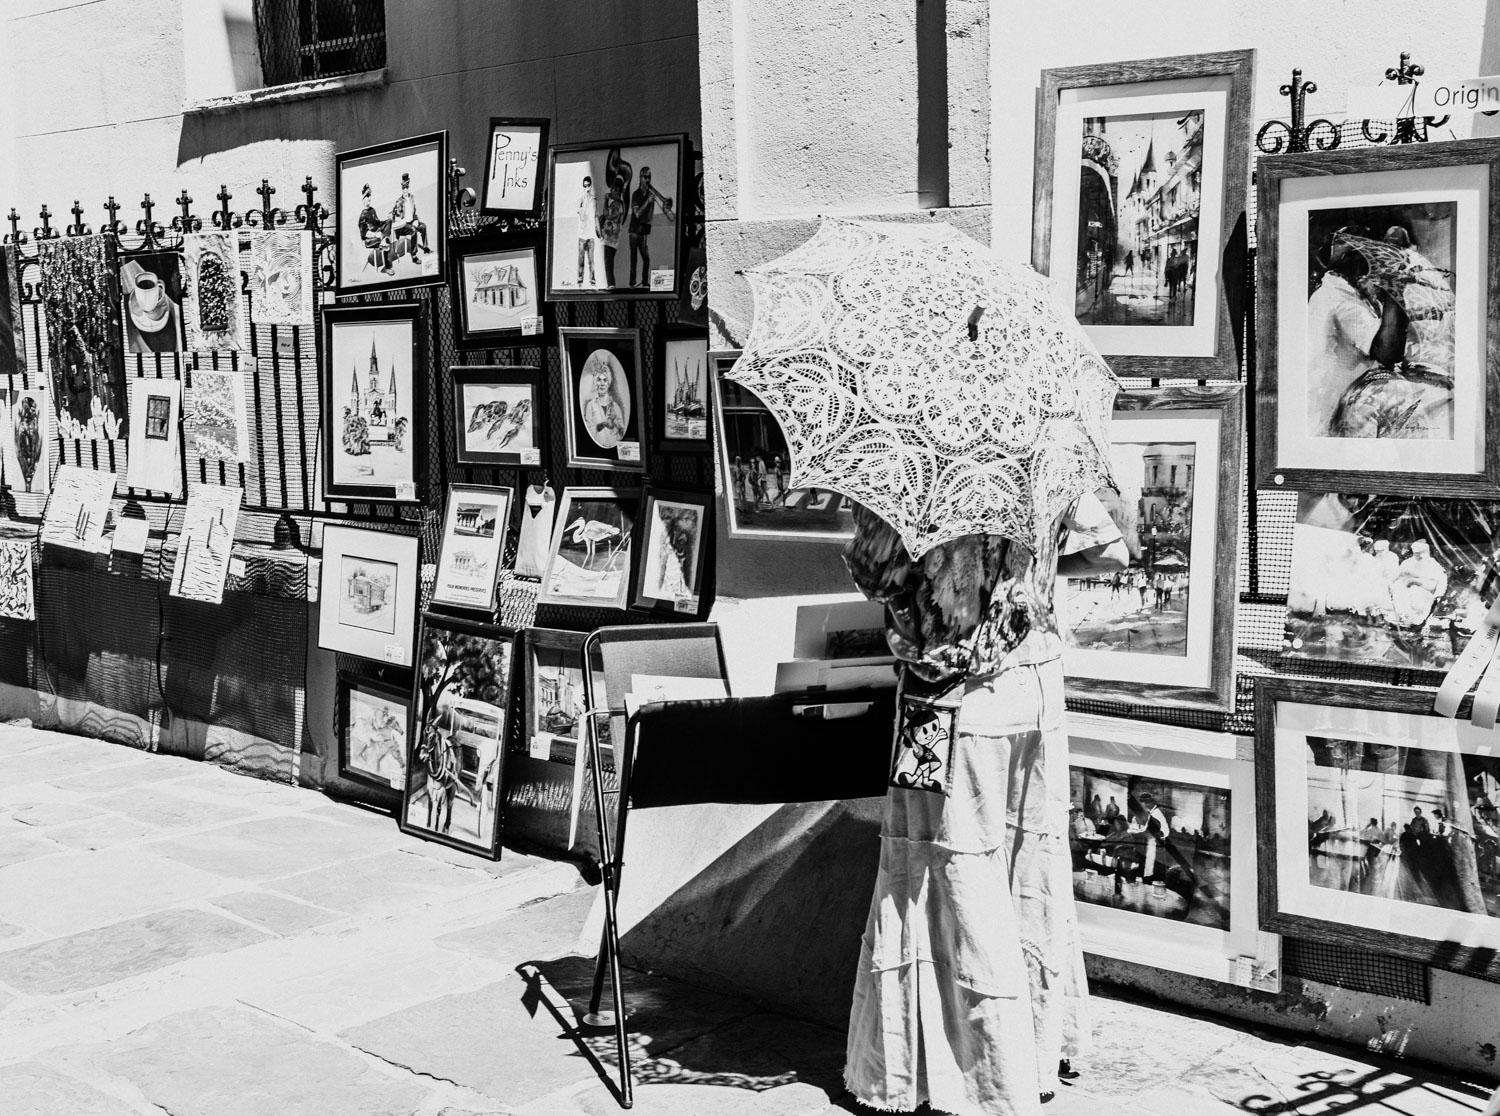 I was captivated by this woman and her umbrella as she perused paintings during the Pirate